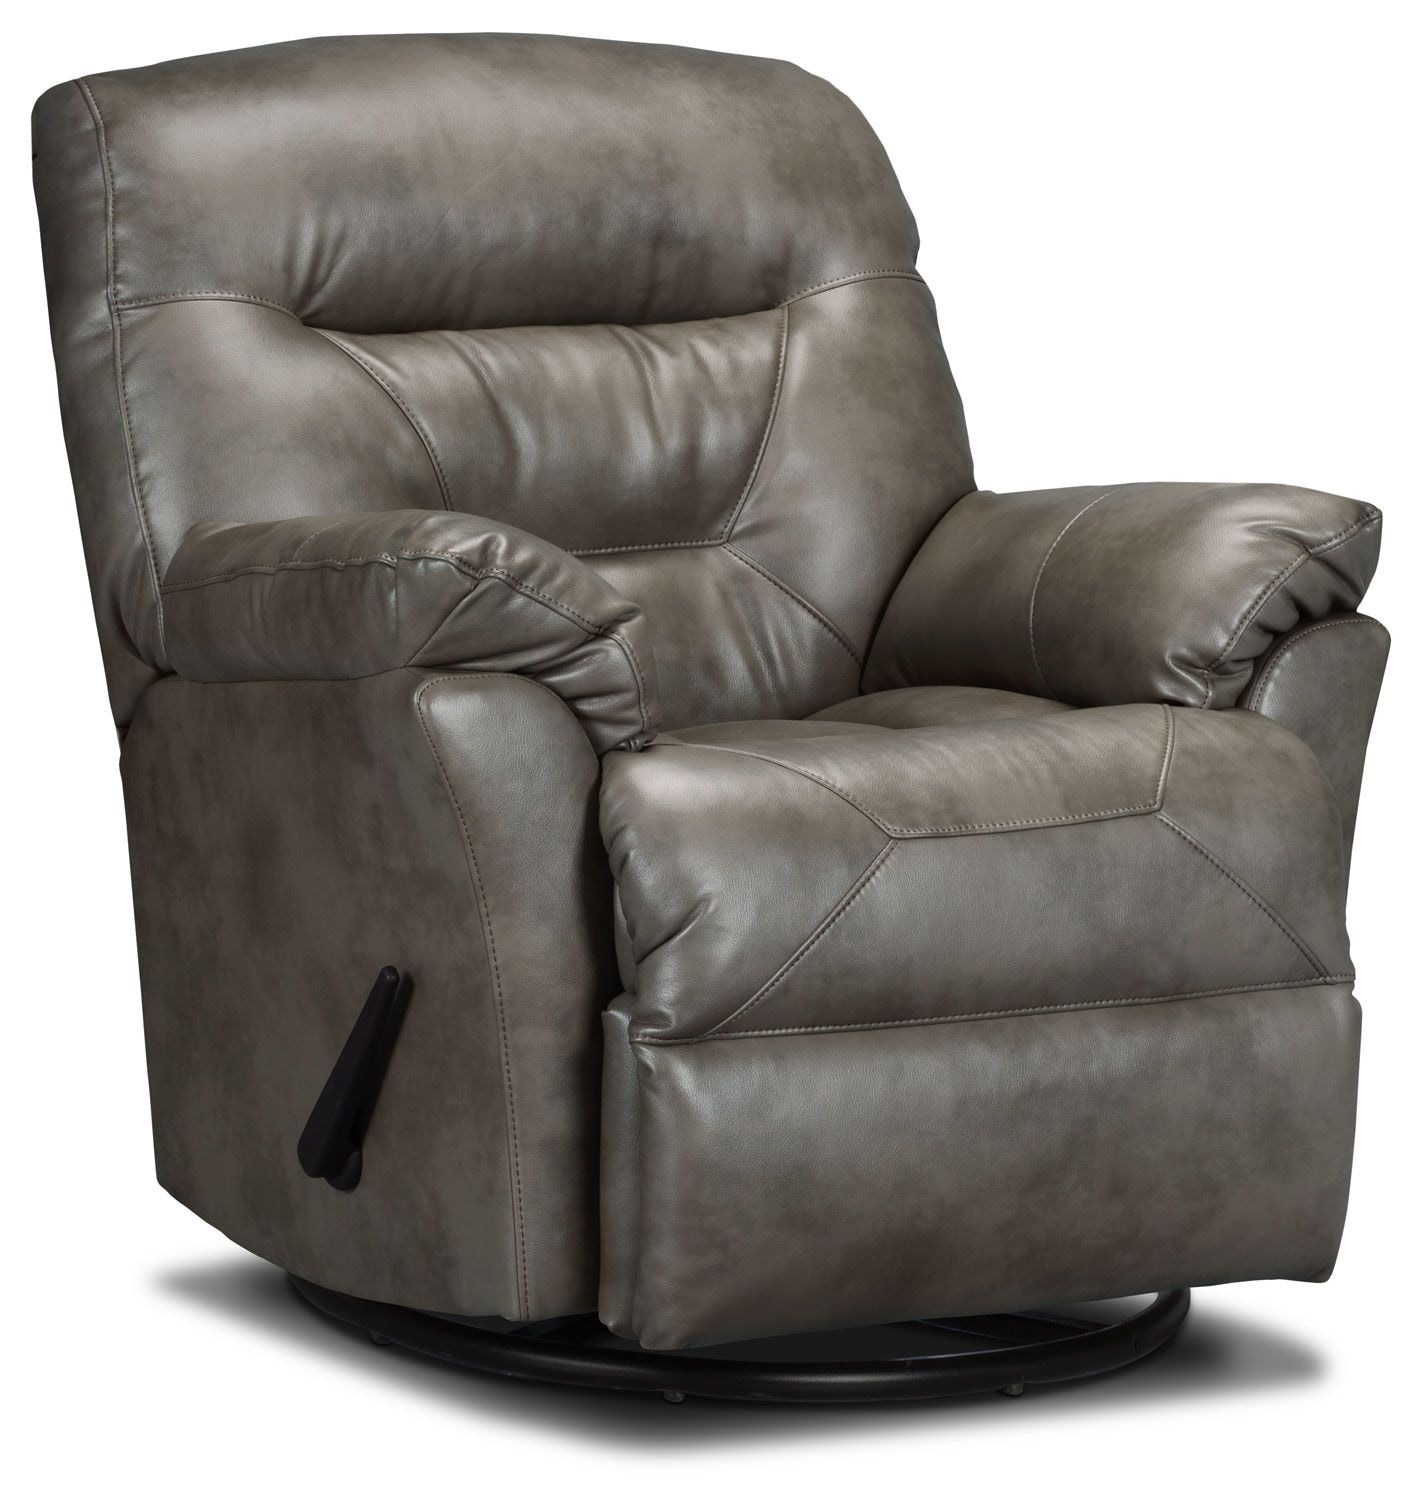 Designed2B Recliner 4579 Leather-Look Fabric Swivel Glider Recliner - Smoke